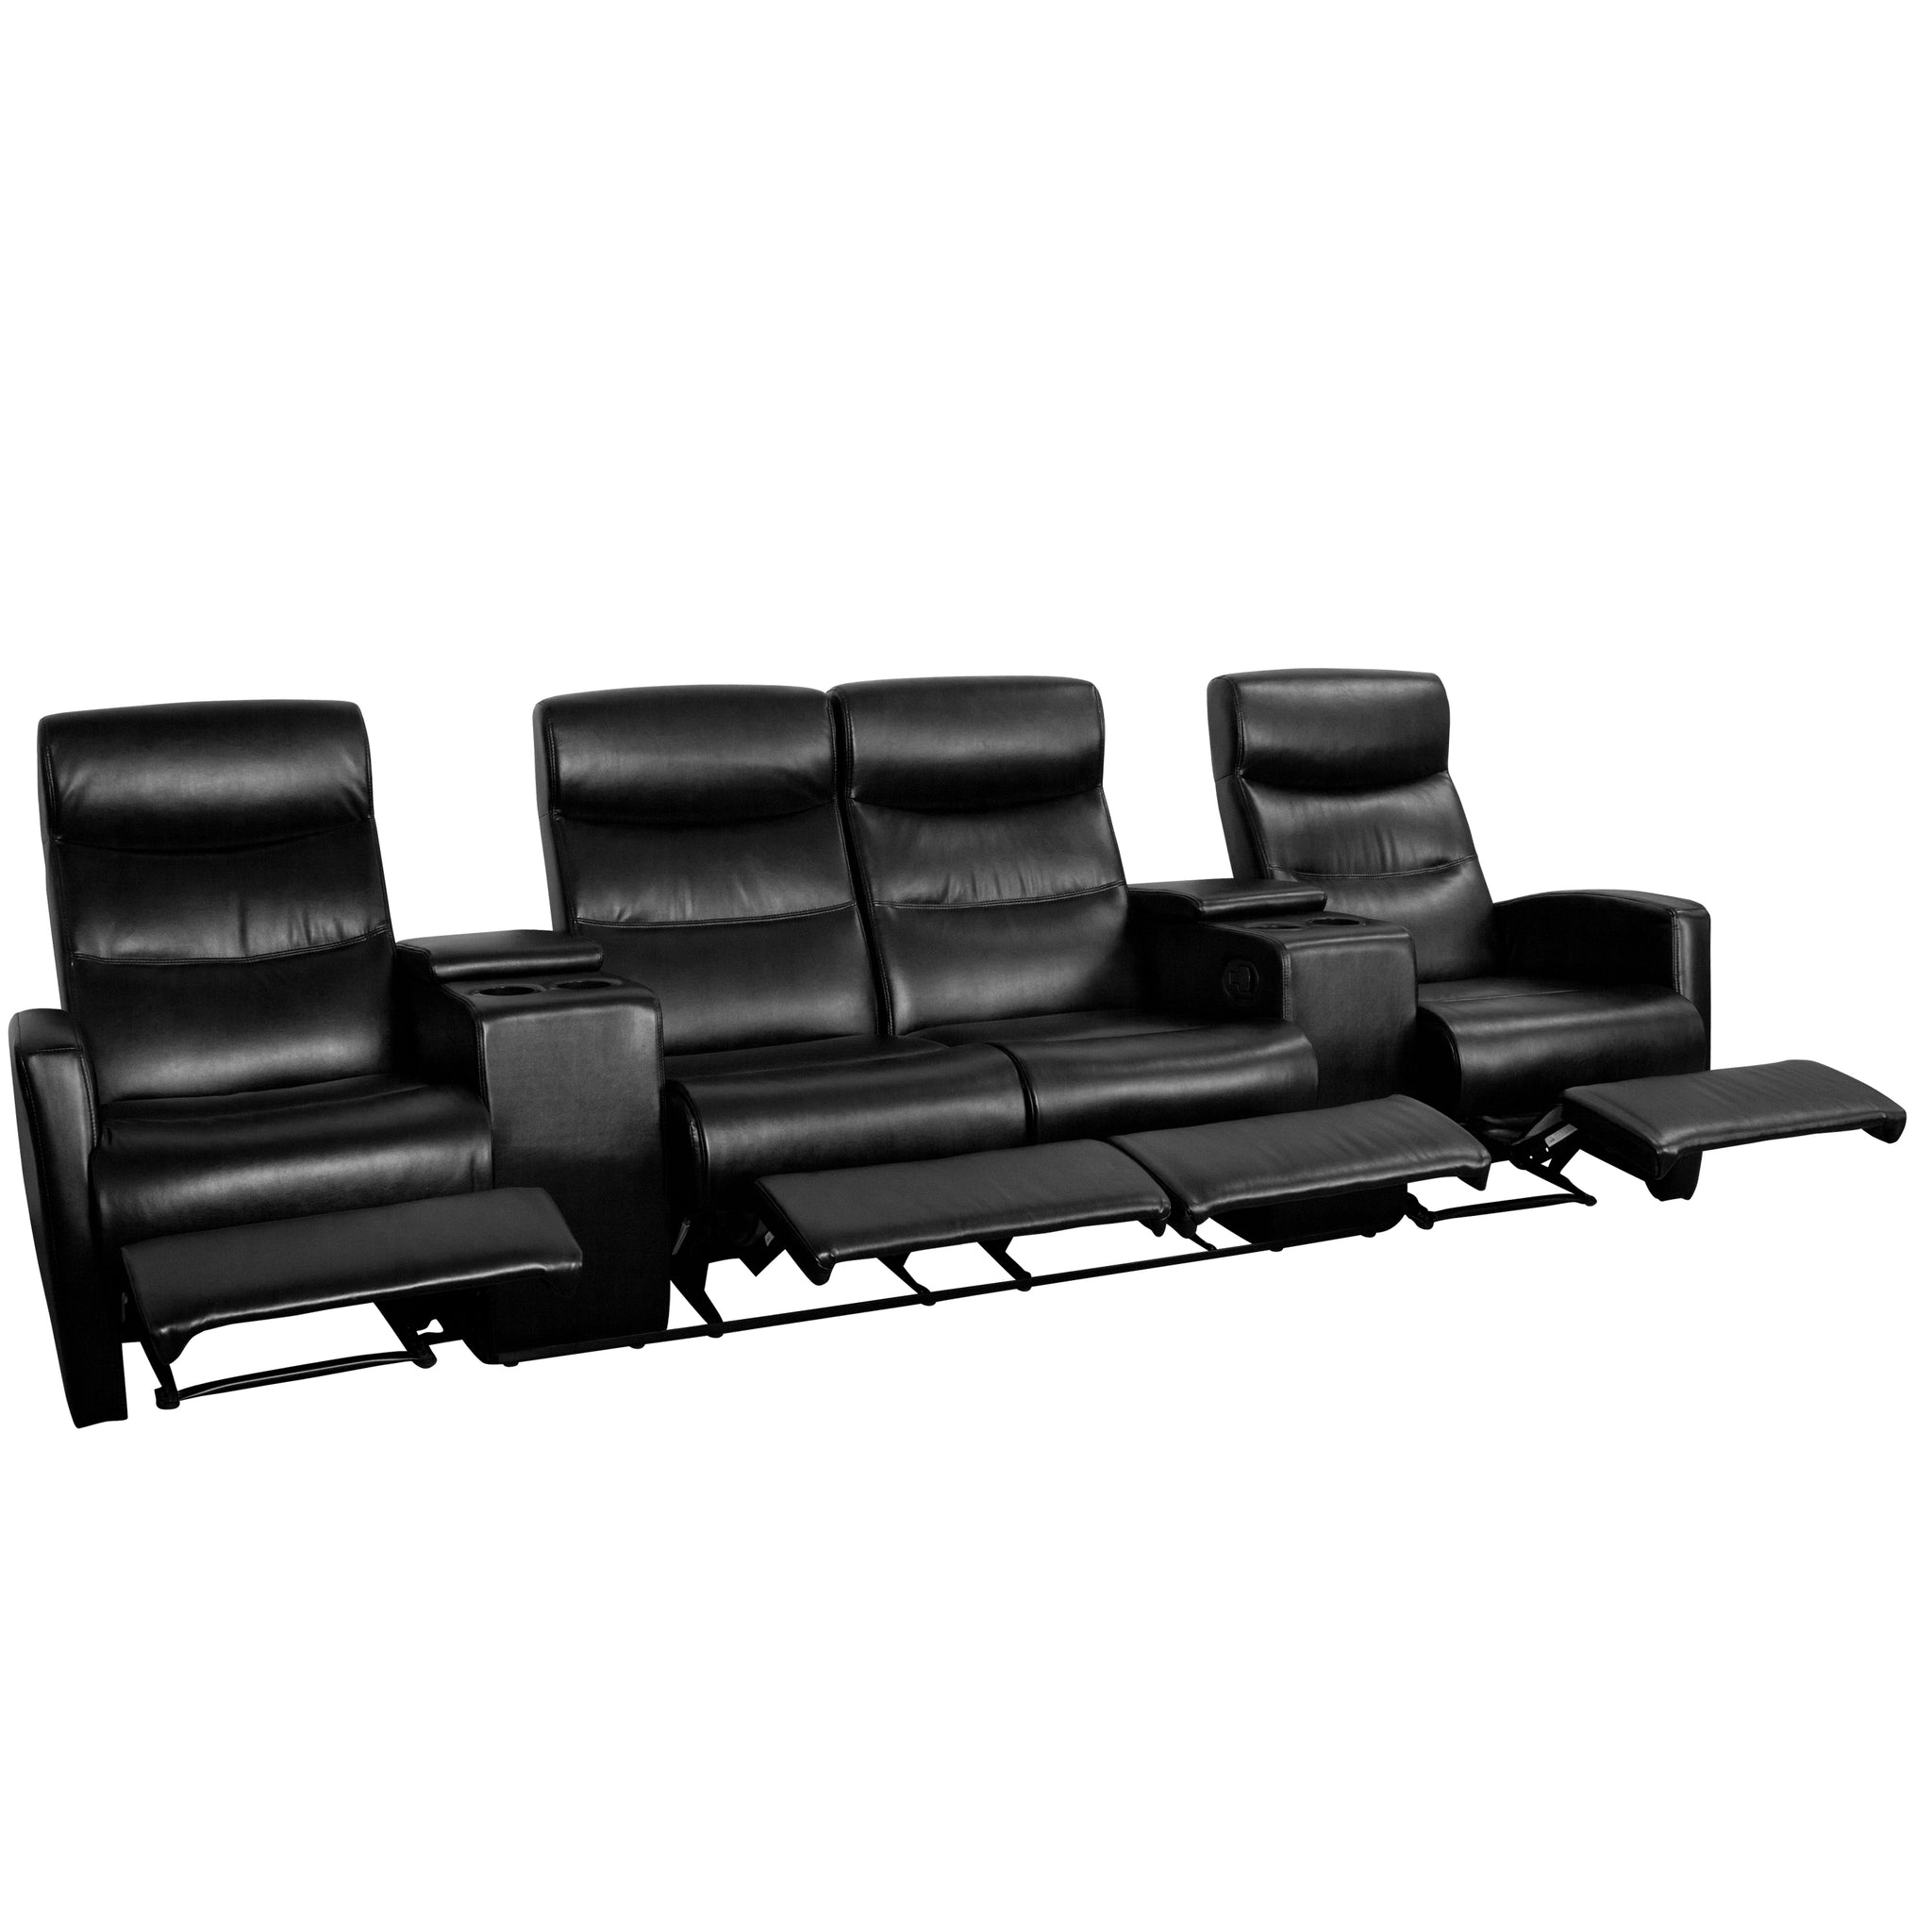 Anetos Series 4-Seat Reclining Leather Theater Seating Unit with Cup Holders: Black